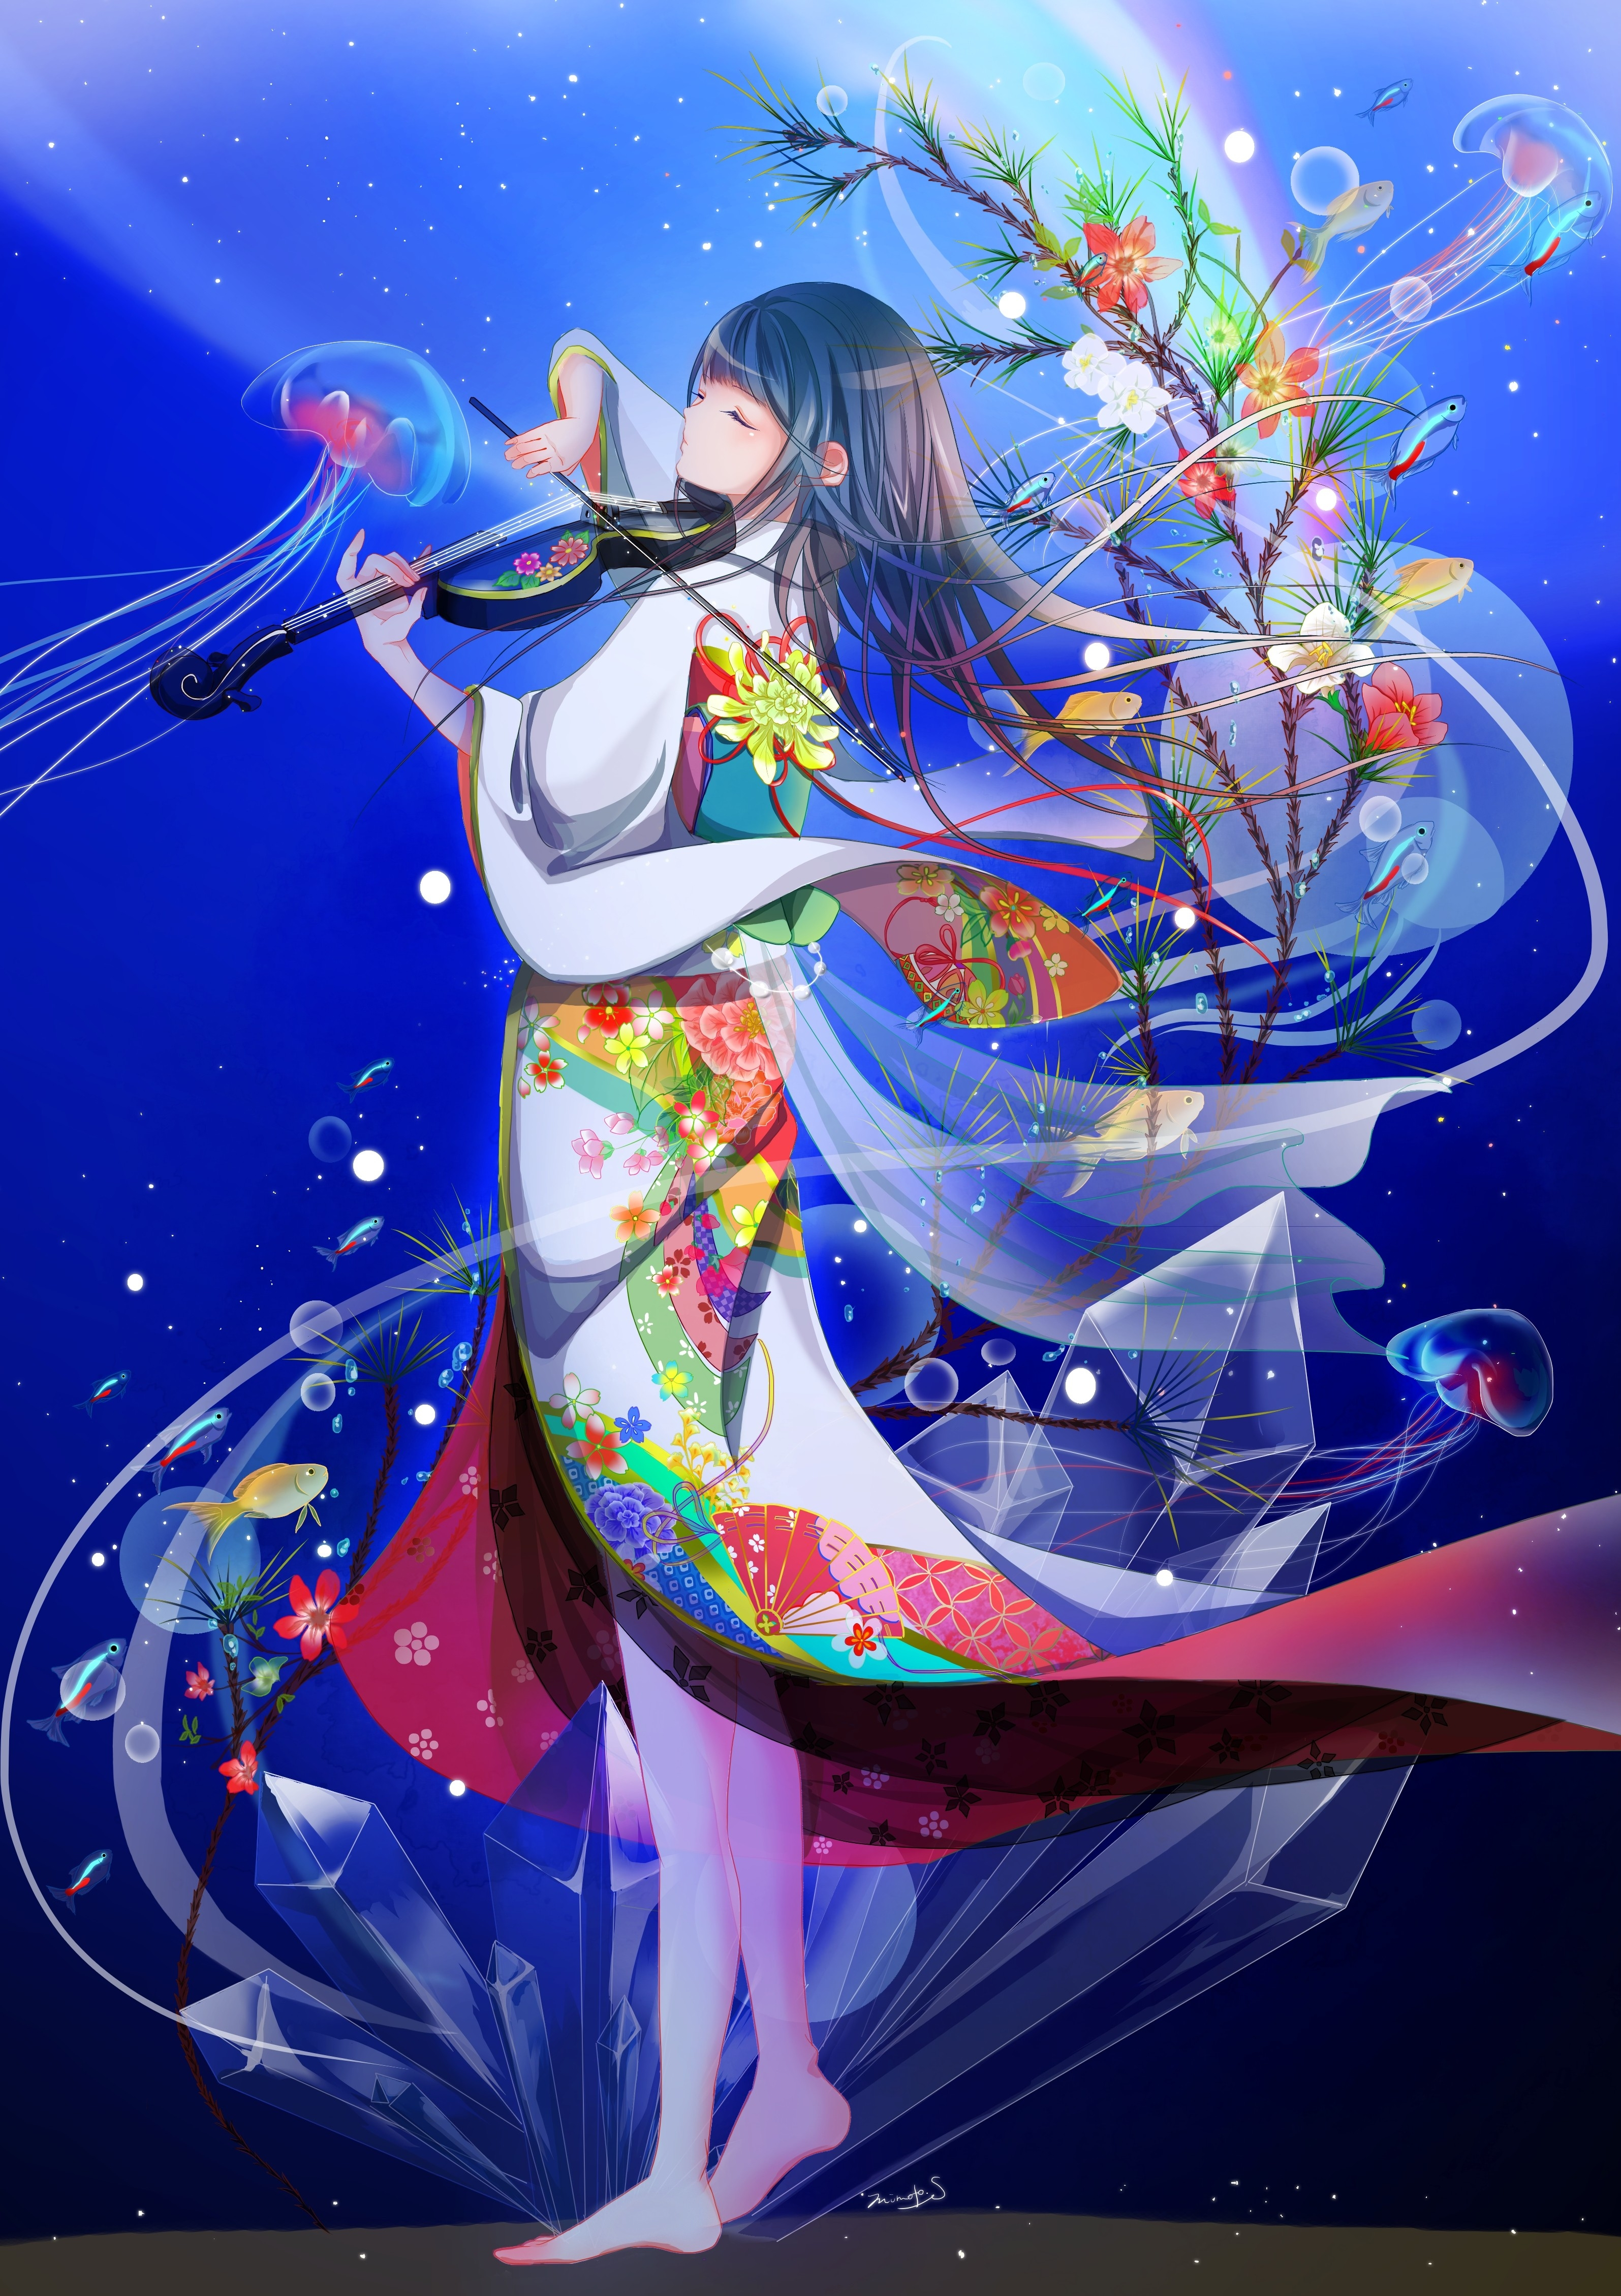 Kimono Anime Girl Android Wallpaper Download 3190x4518 Anime Girl Violin Japanese Outfit